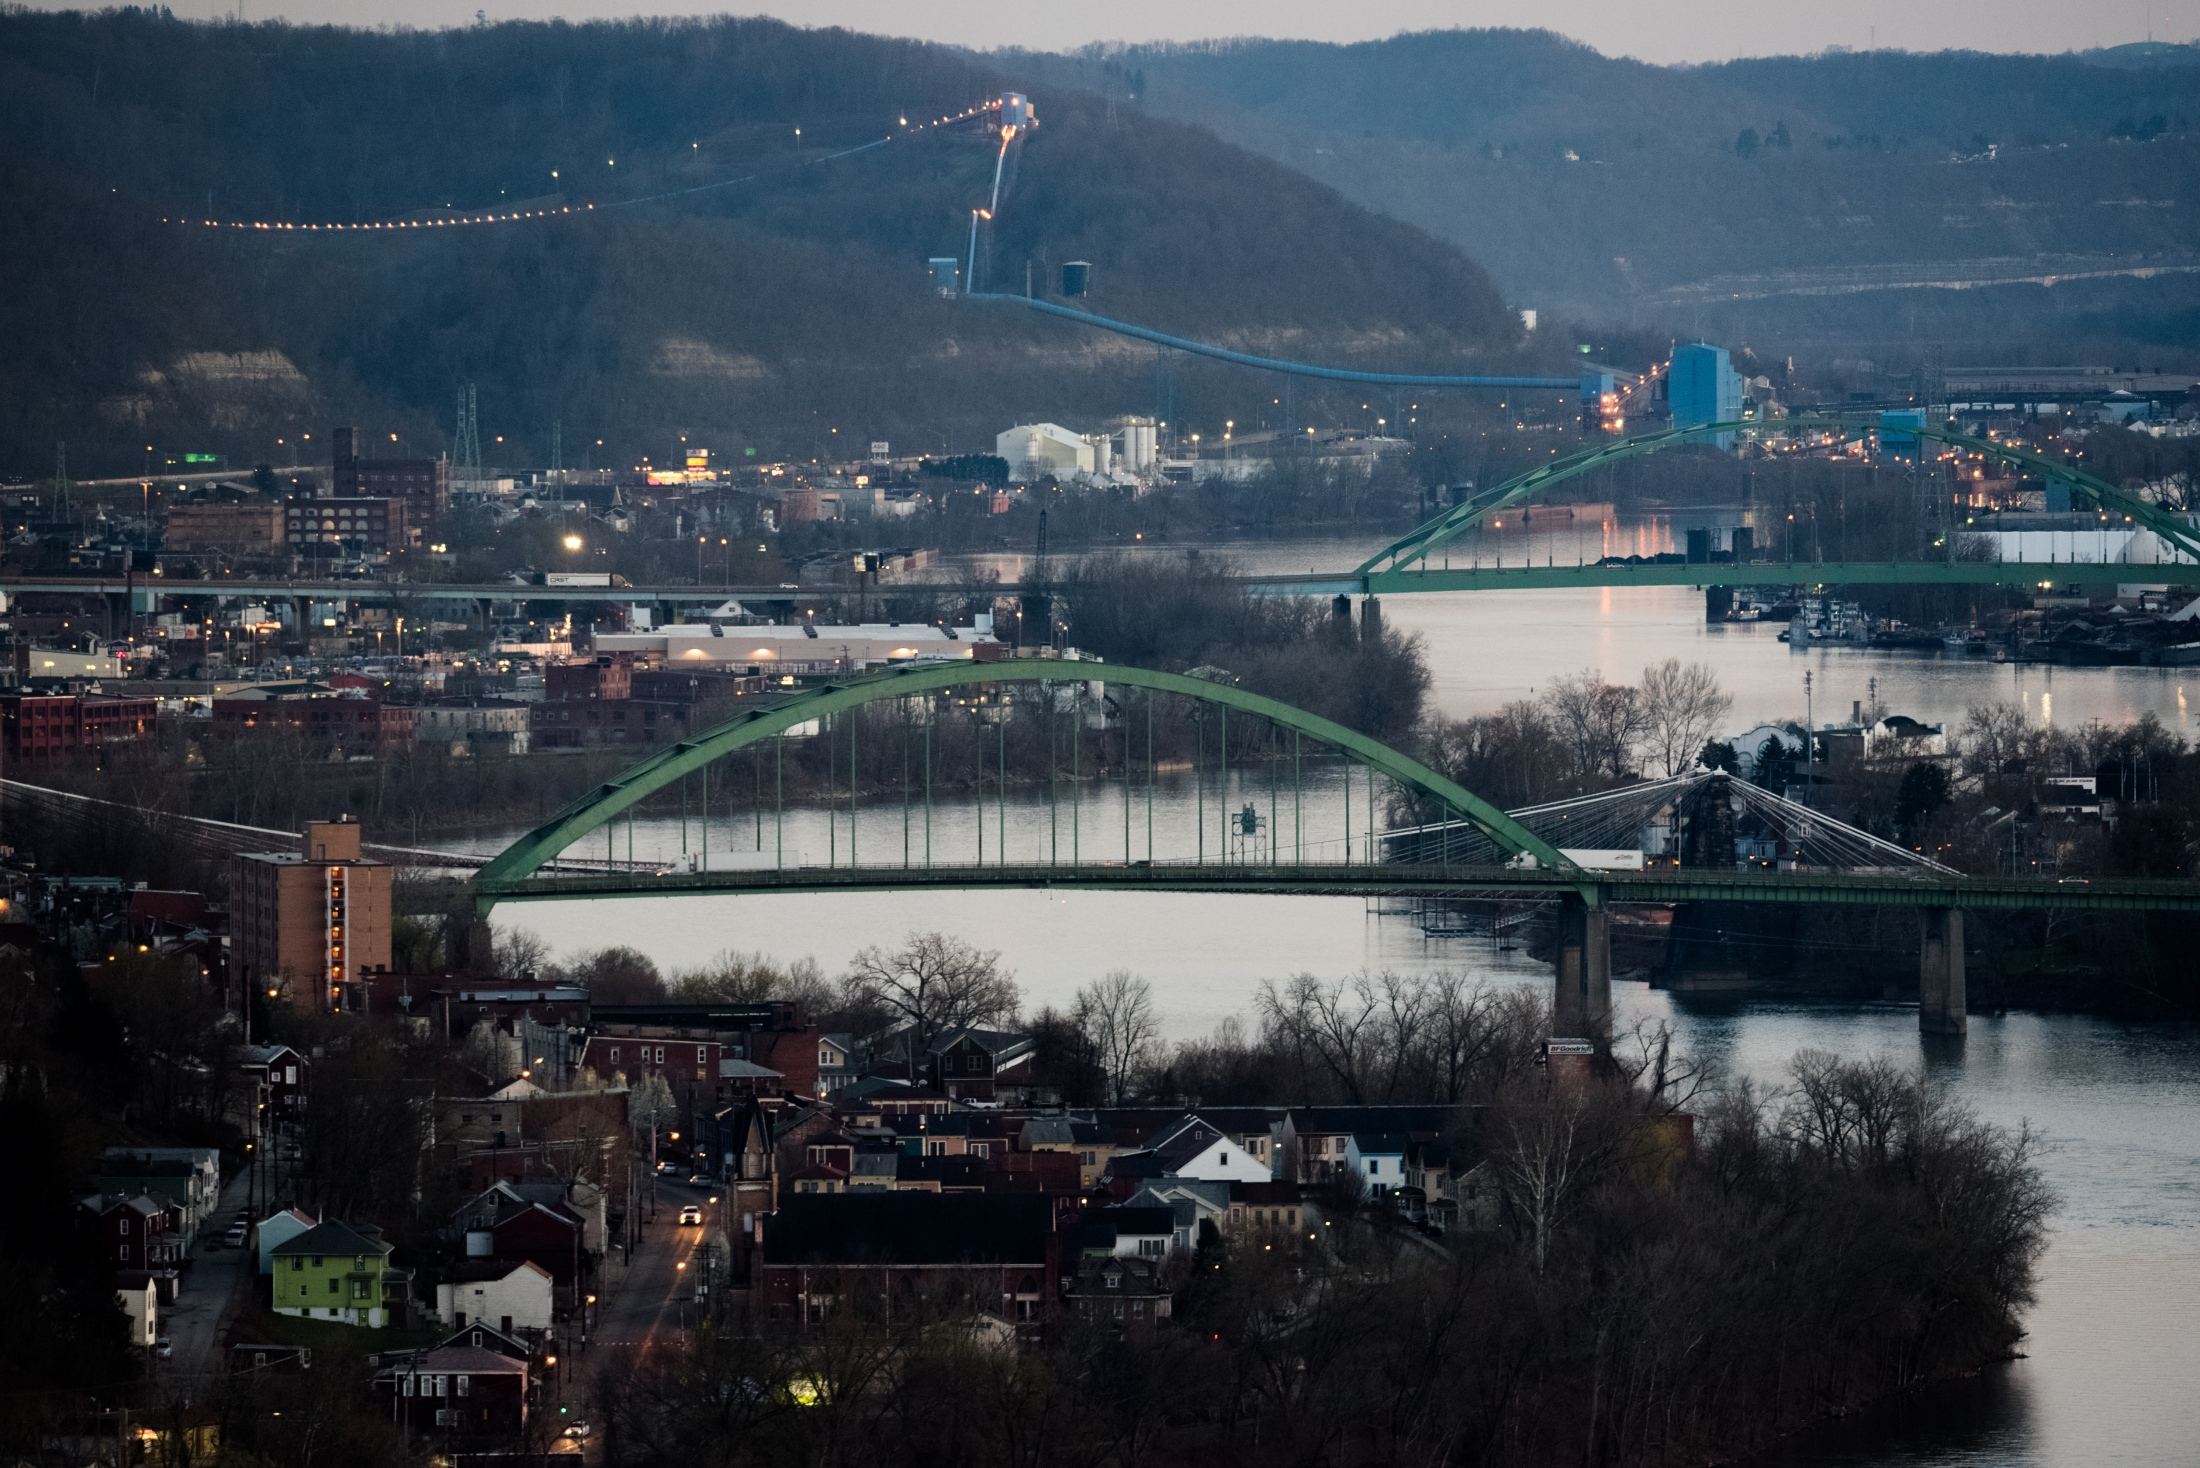 Dusk falls on Wheeling, West Virginia.